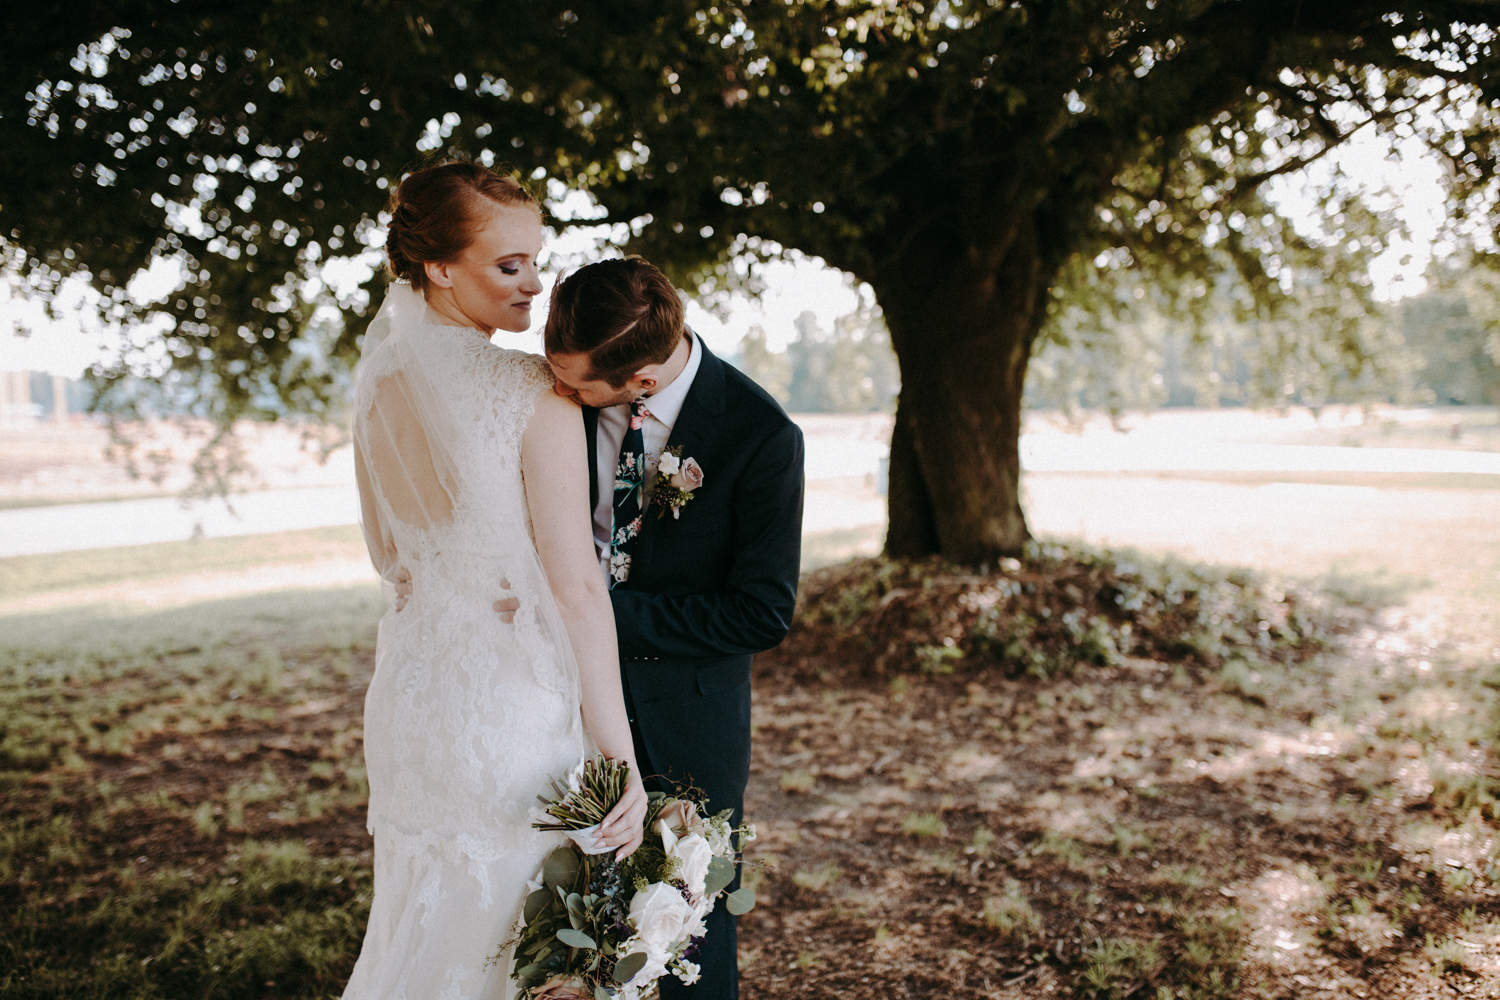 Farm House North Carolina Wedding: Tiffany & Evan